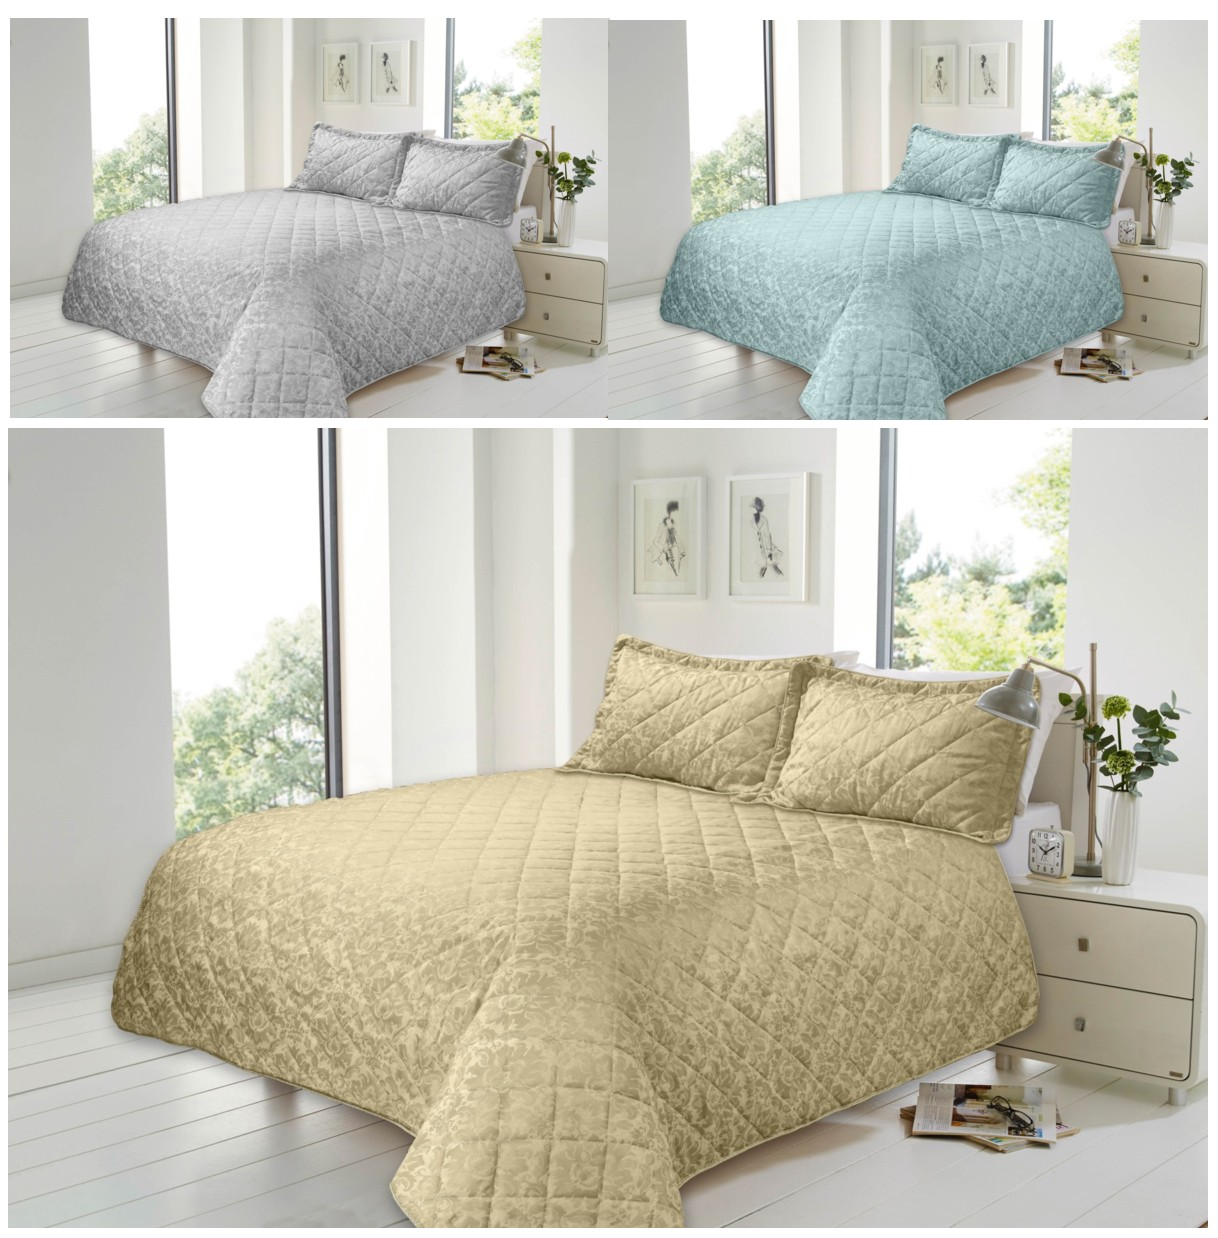 Savoy Cotton Rich Jacquard Quilted Bedspread 2 Pillow